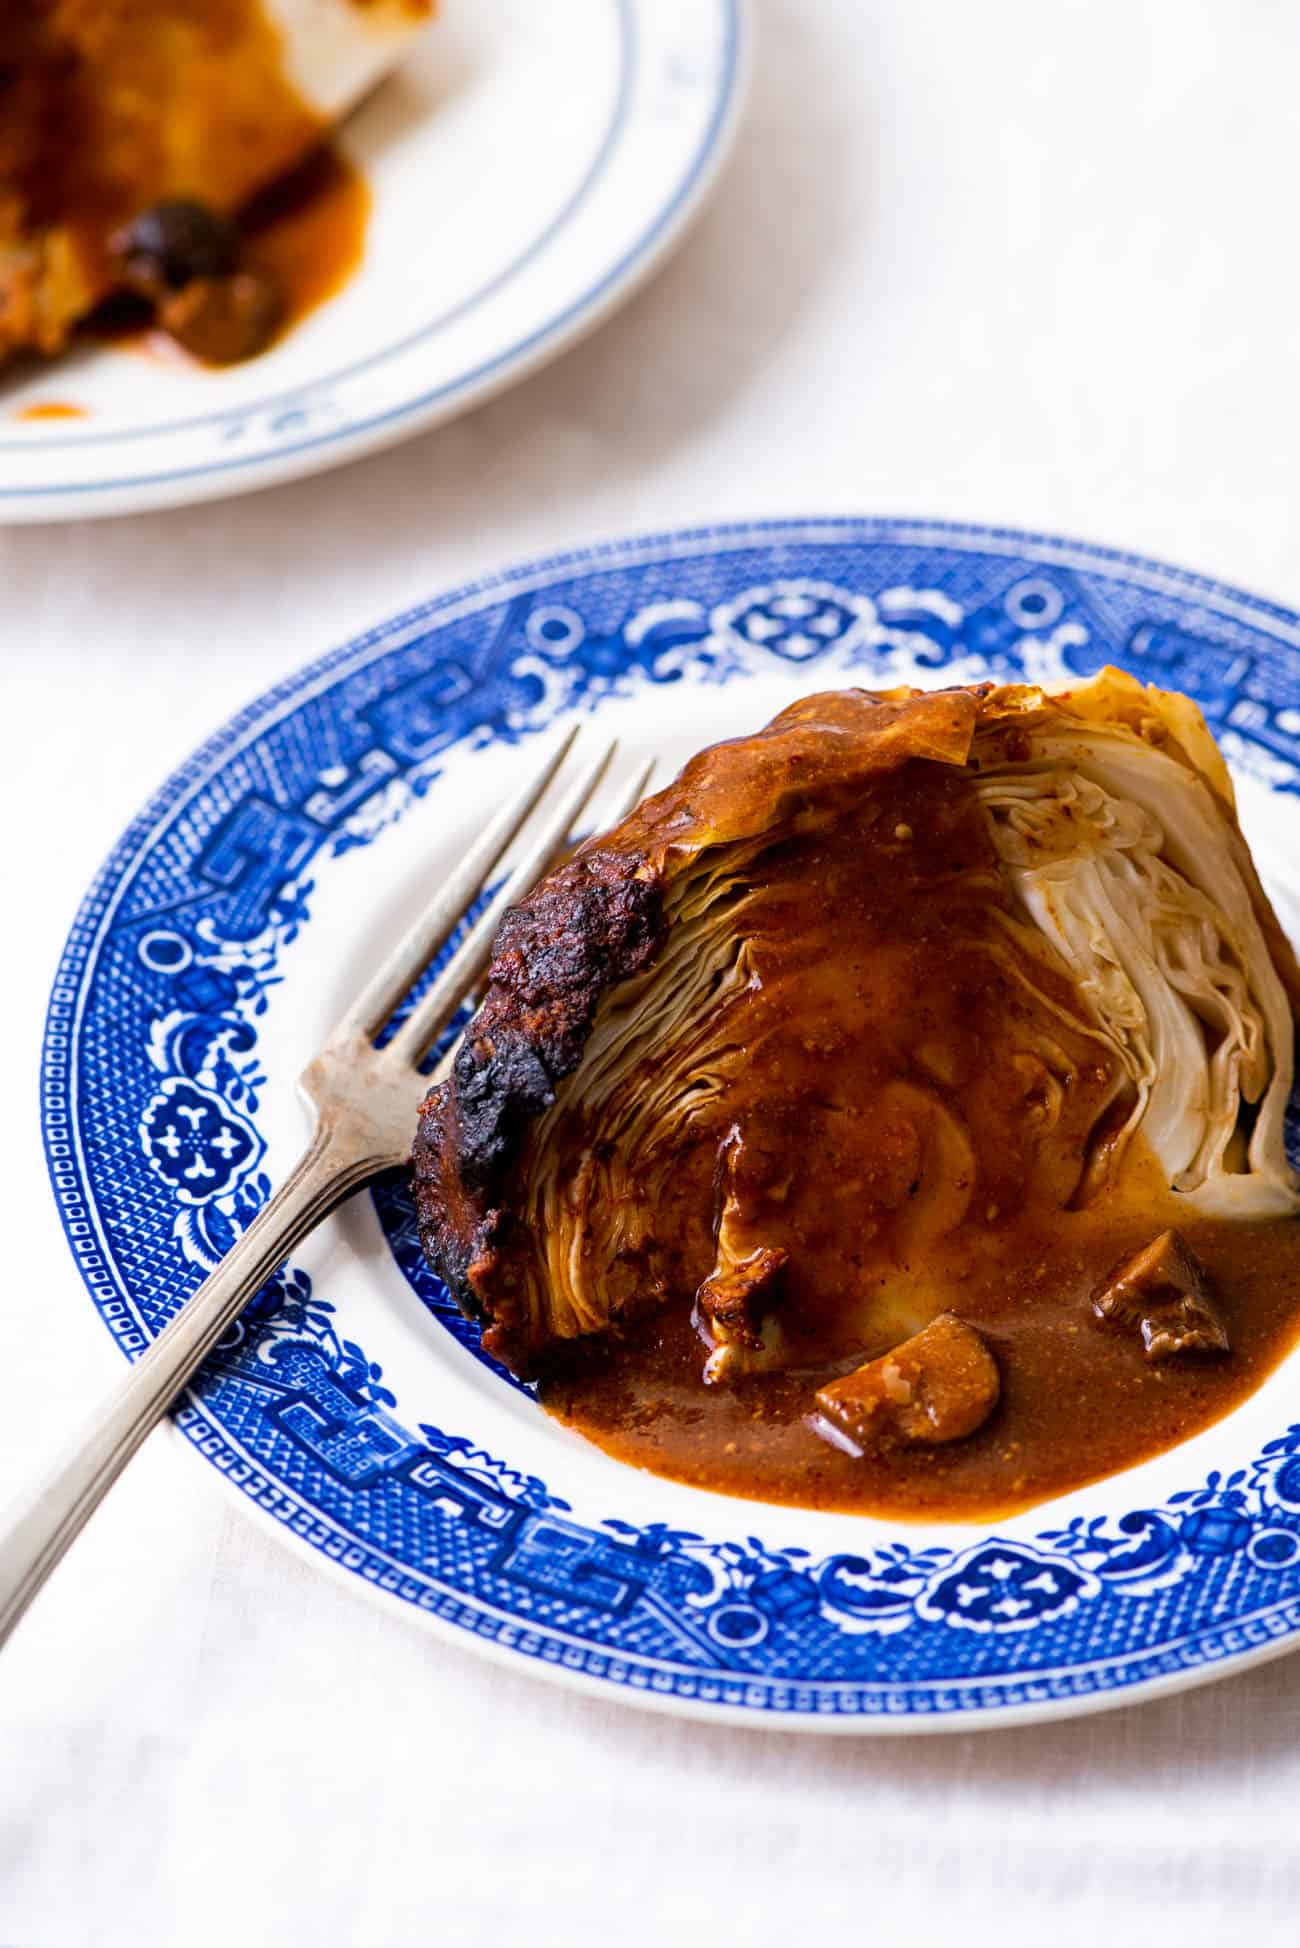 A wedge of whole roasted cabbage with a mushroom-tomato gravy drizzled on top, on a blue chinoiserie plate